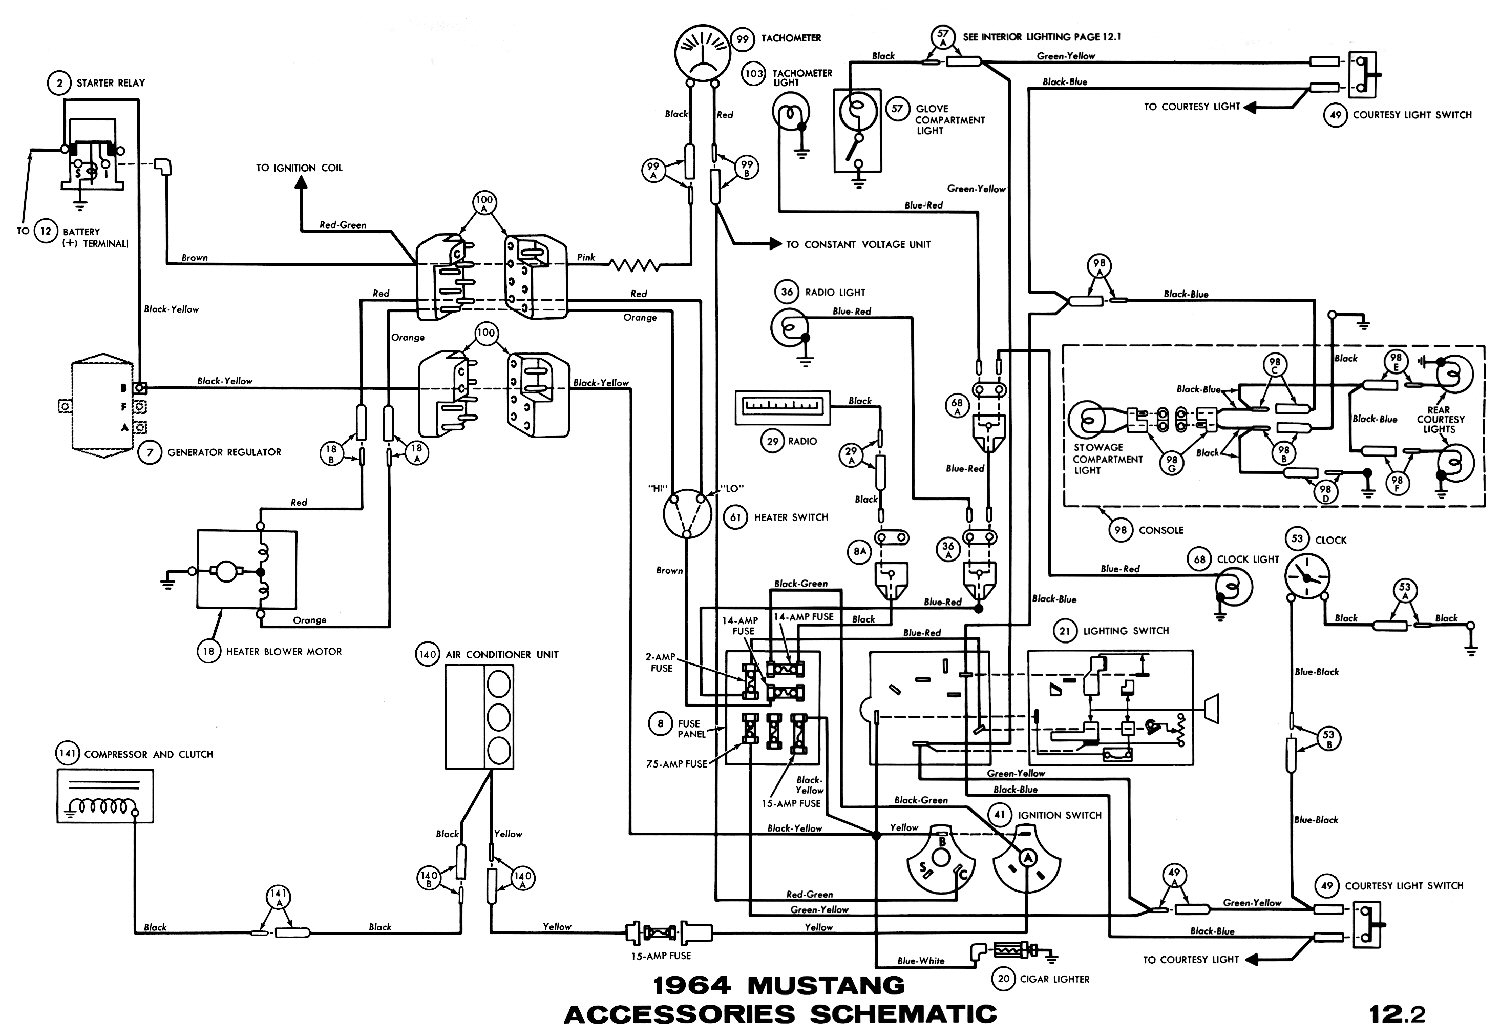 1965 ford mustang wiring diagram Download-2012 Mustang Fuse Box Diagram Unique 2007 ford Mustang Wiring Diagram Wiring Diagram 2-f